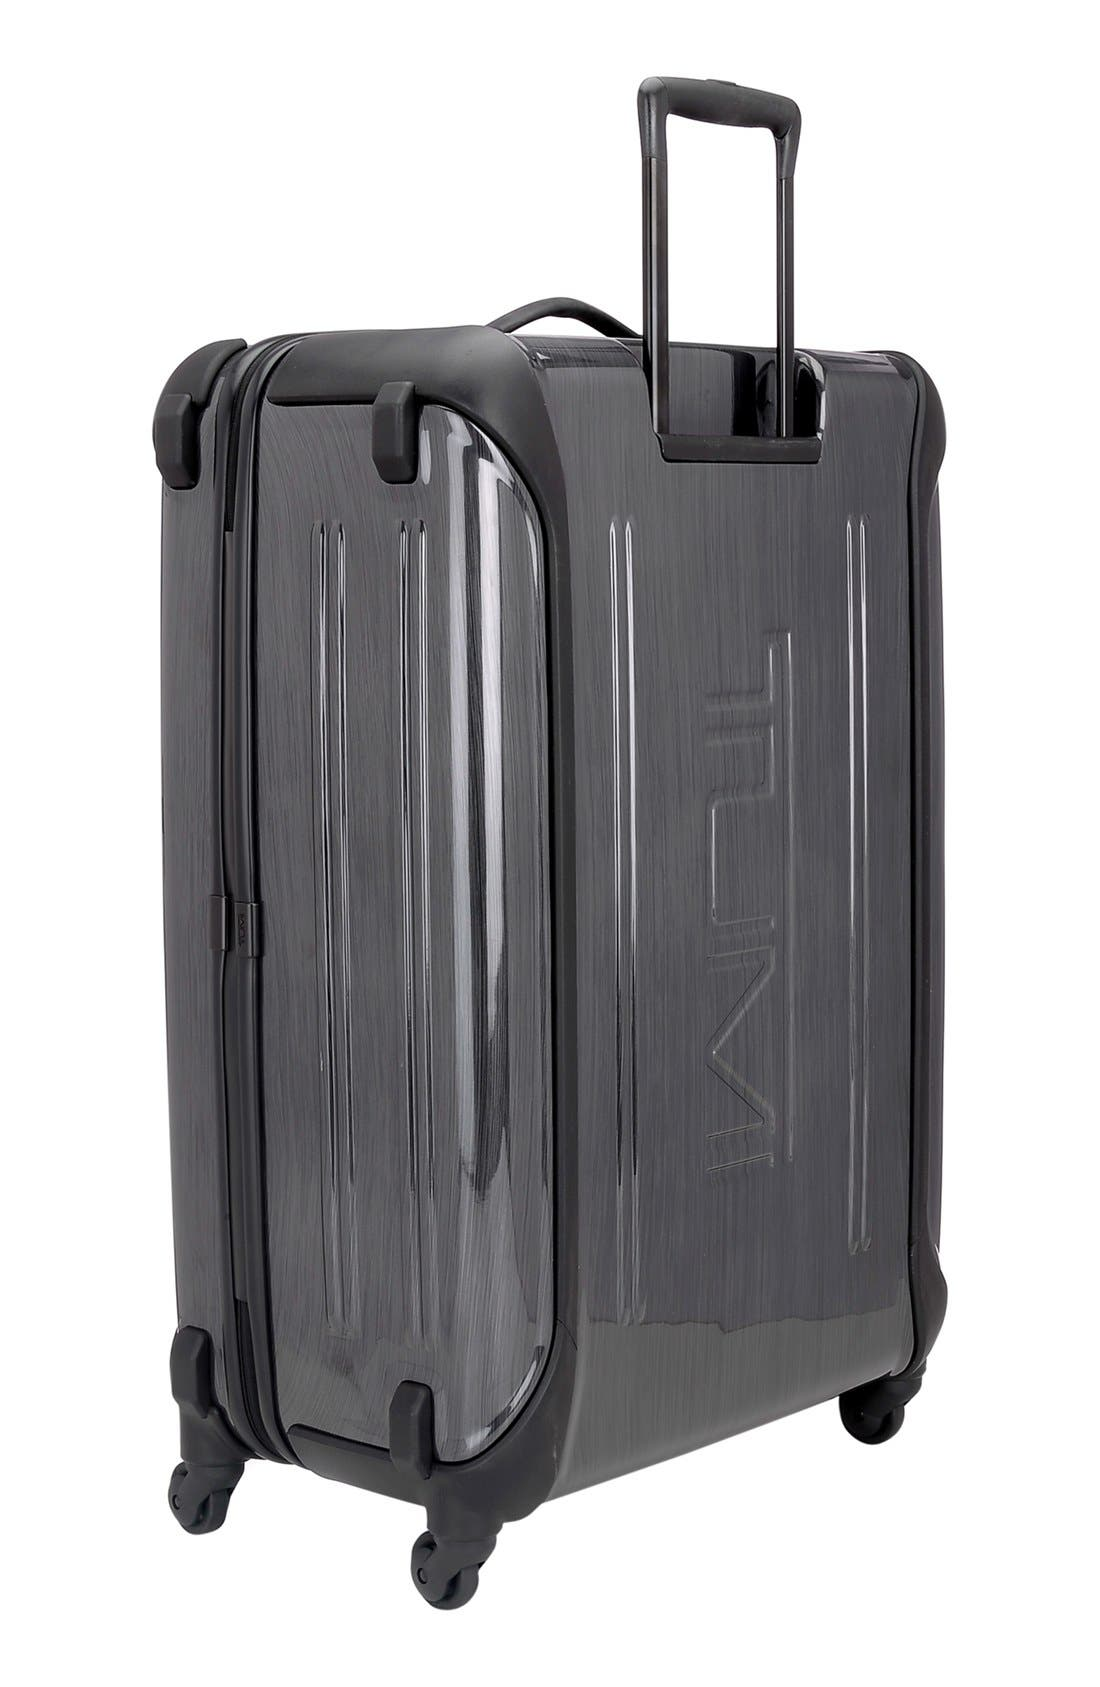 'Vapor<sup>™</sup>' Extended Trip Packing Case,                             Alternate thumbnail 2, color,                             001